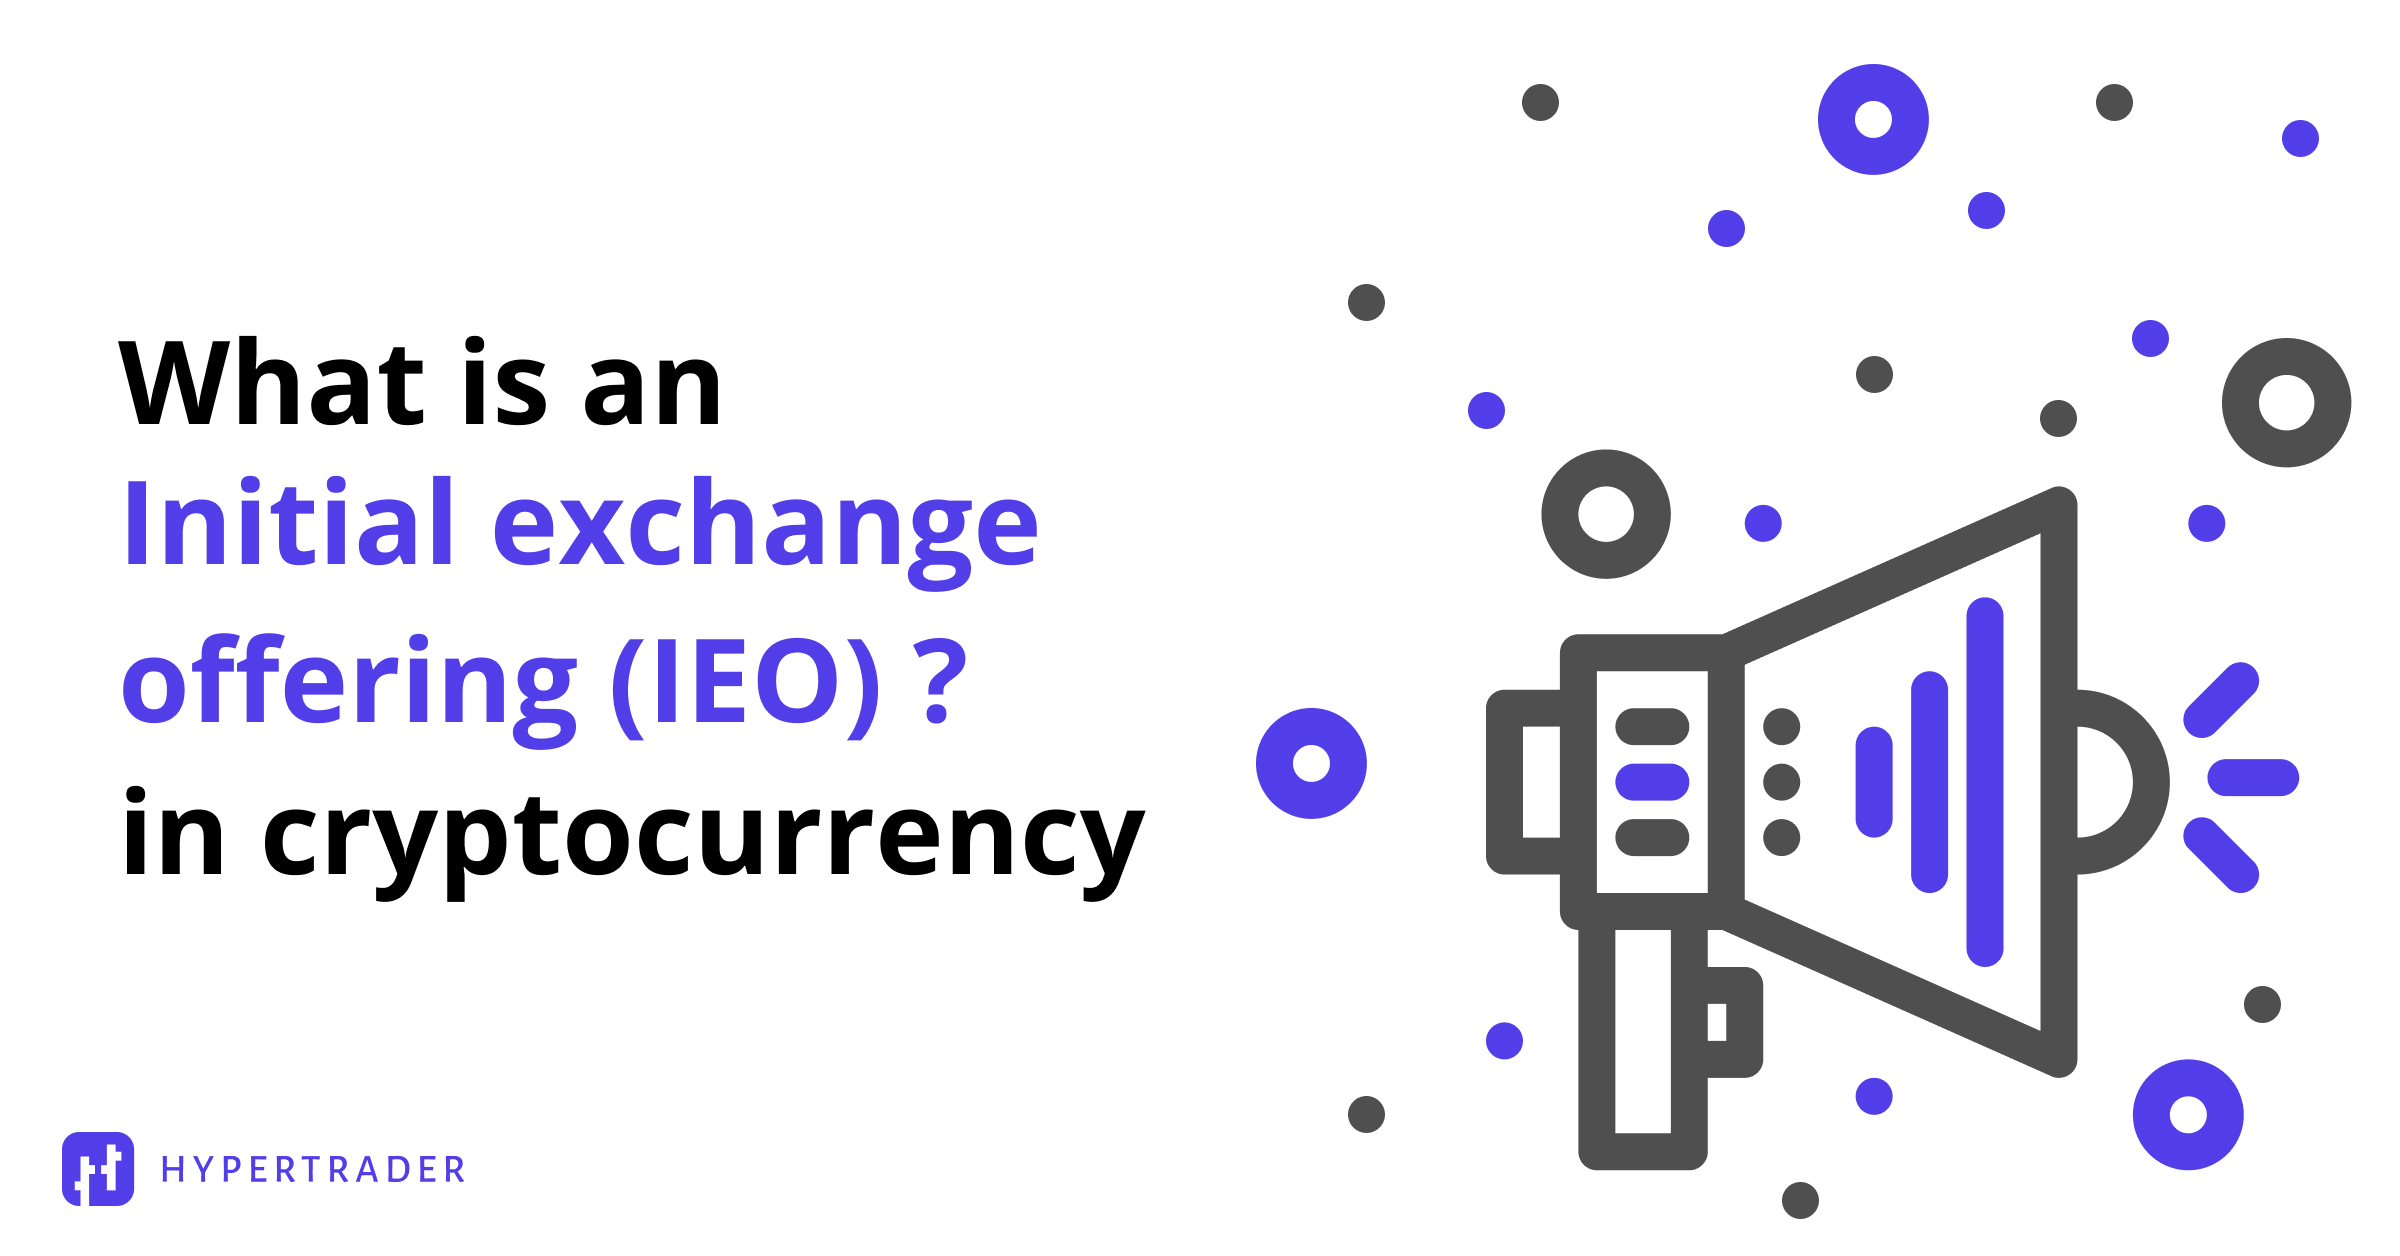 What is an IEO?